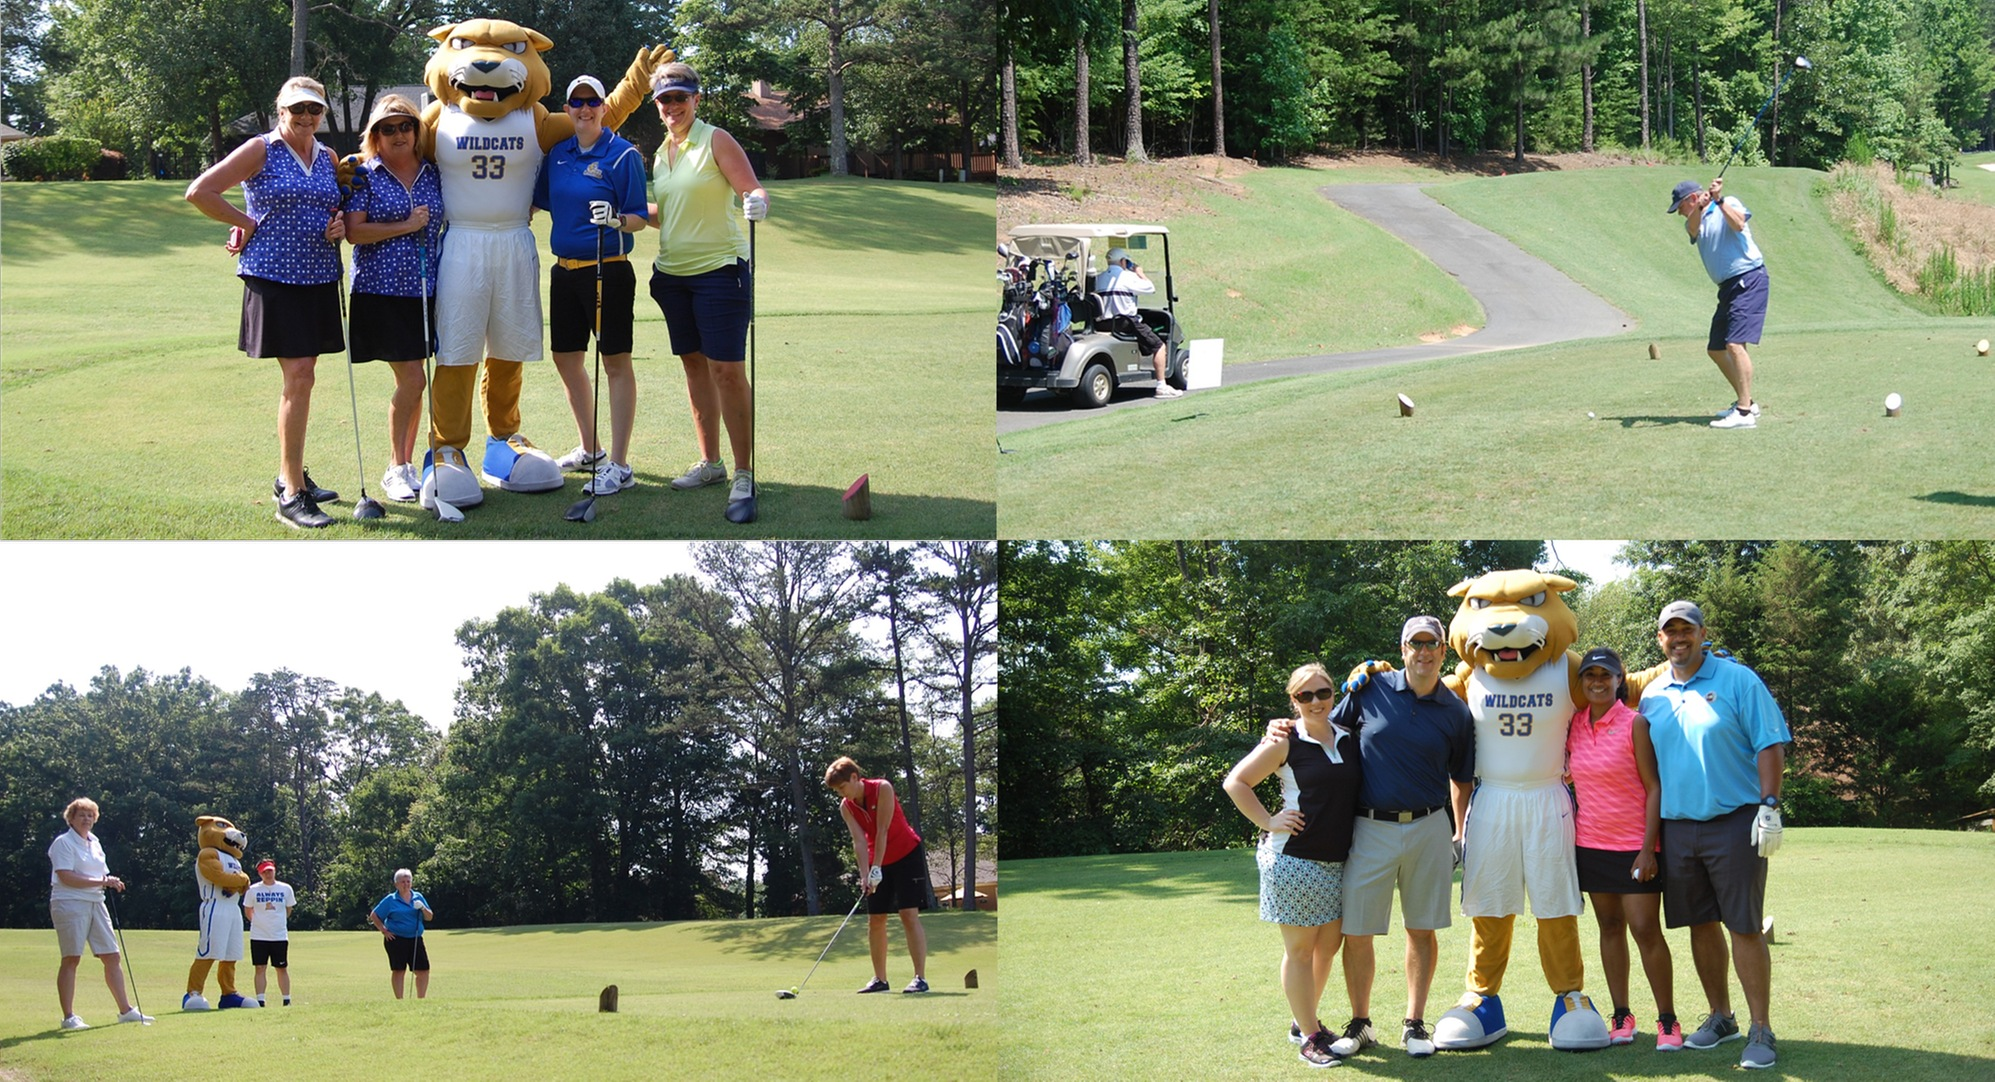 2nd Annual JWU Wildcat Golf Classic A Resounding Success!